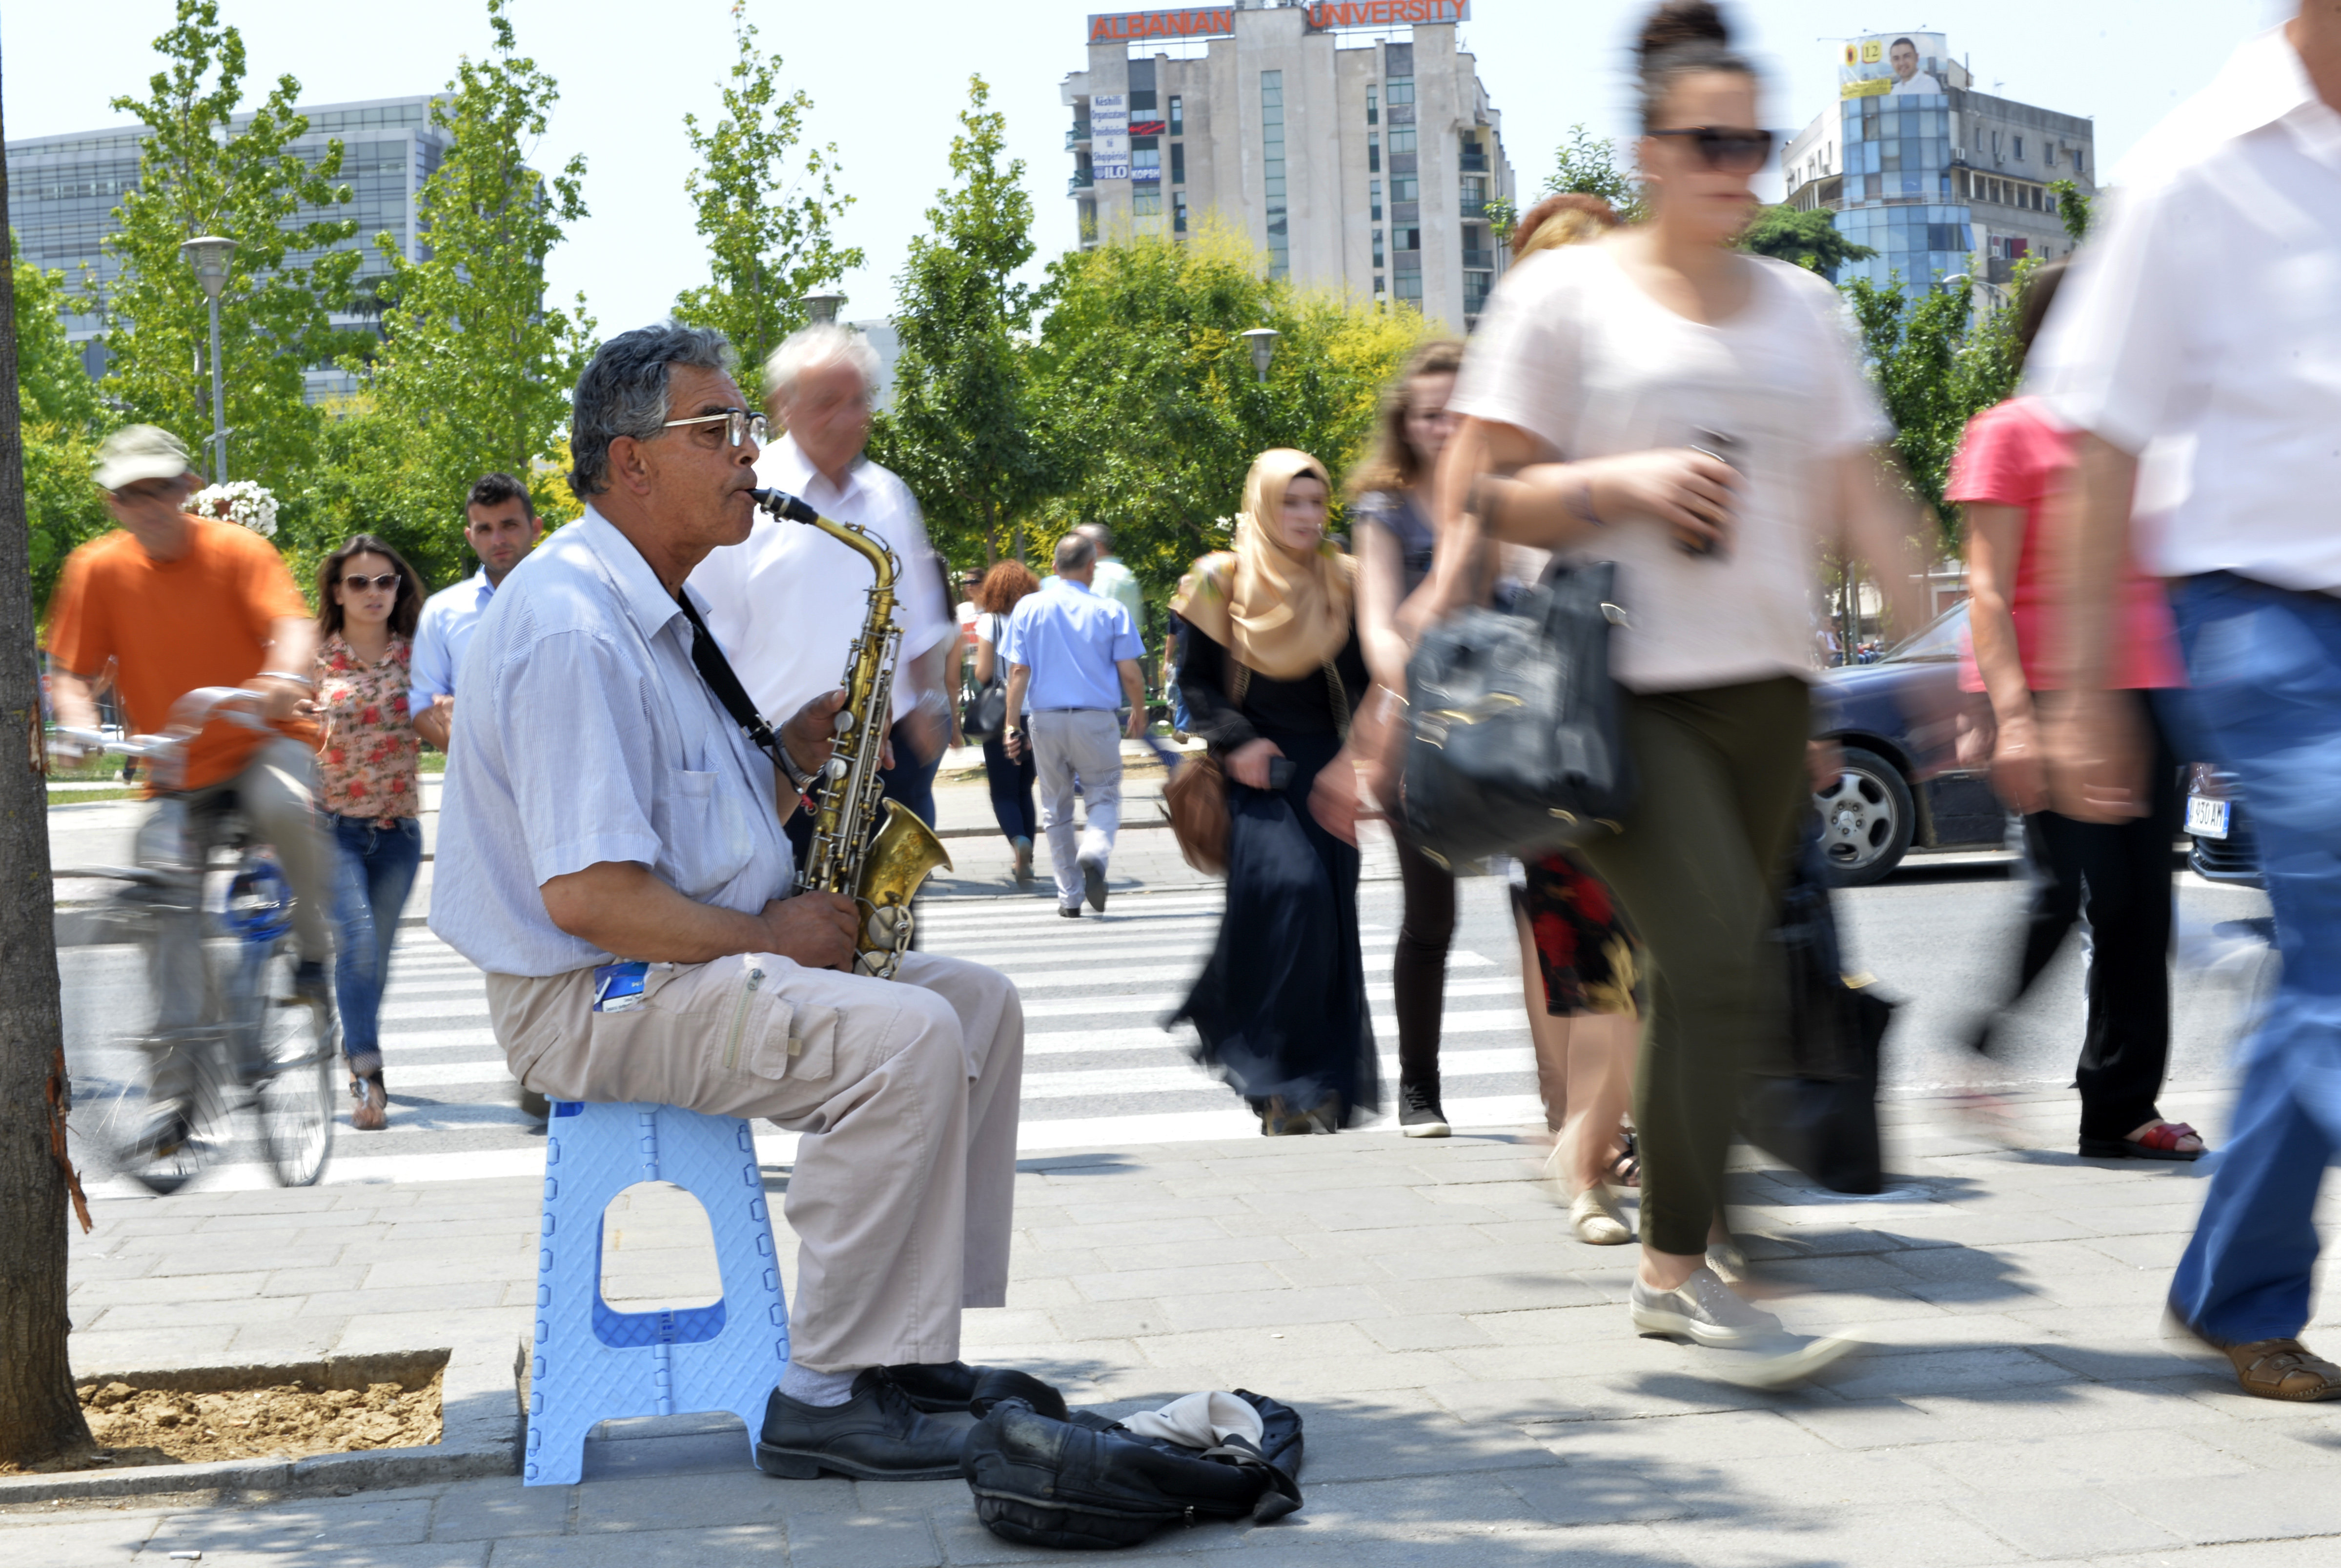 A man plays the saxophone on a street in downtown Tirana, on June 12, 2015